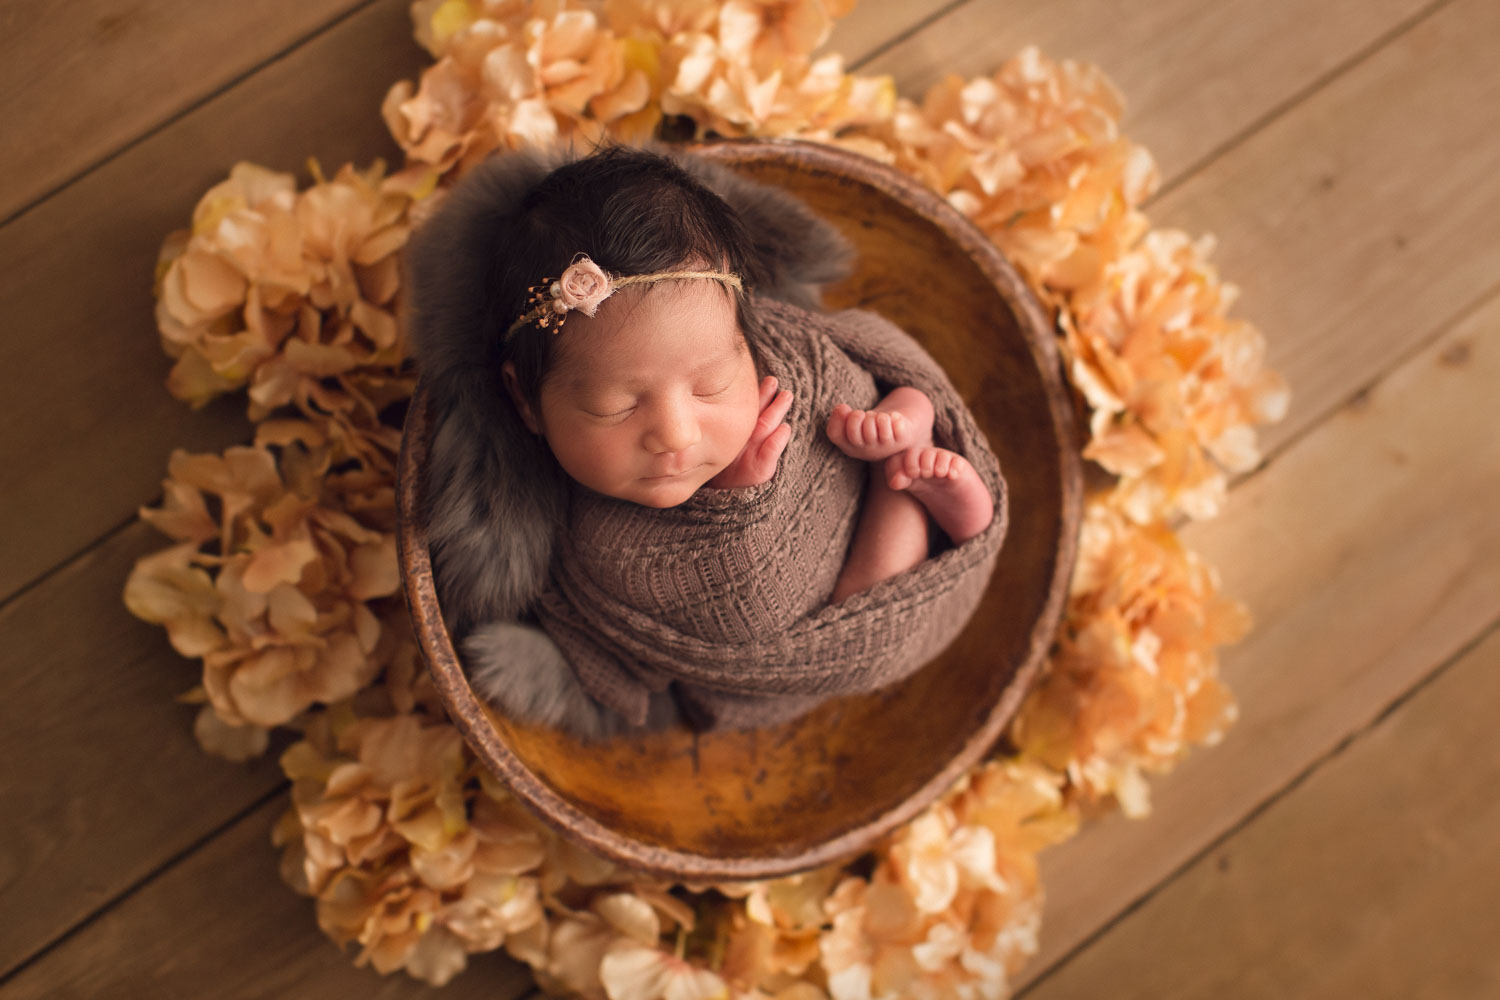 newborn photography - North Vancouver - in a brown basket full of flower